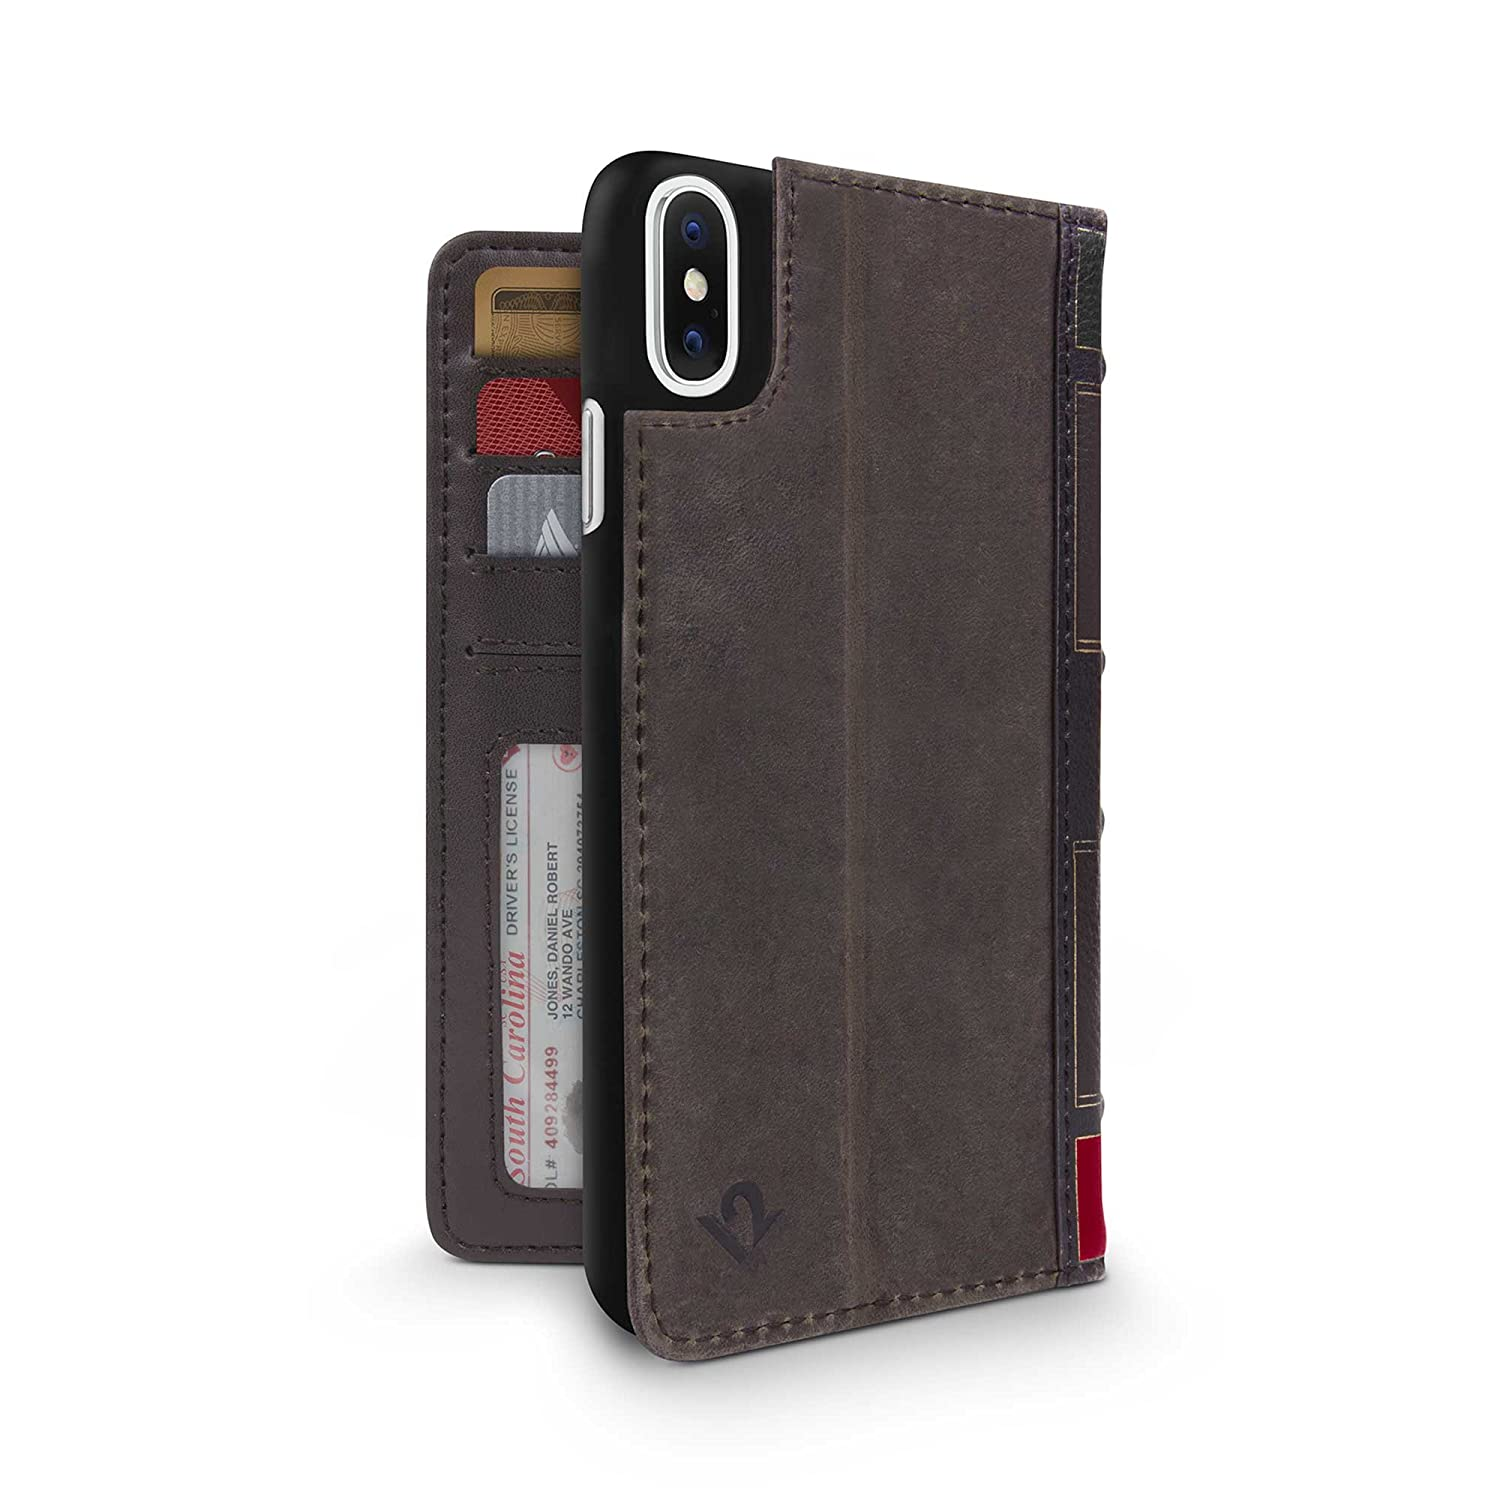 wholesale dealer f5e3c 863fe Twelve South BookBook for iPhone XS / iPhone X | 3-in-1 Leather Wallet  Case, Display Stand and Removable Shell (Brown)